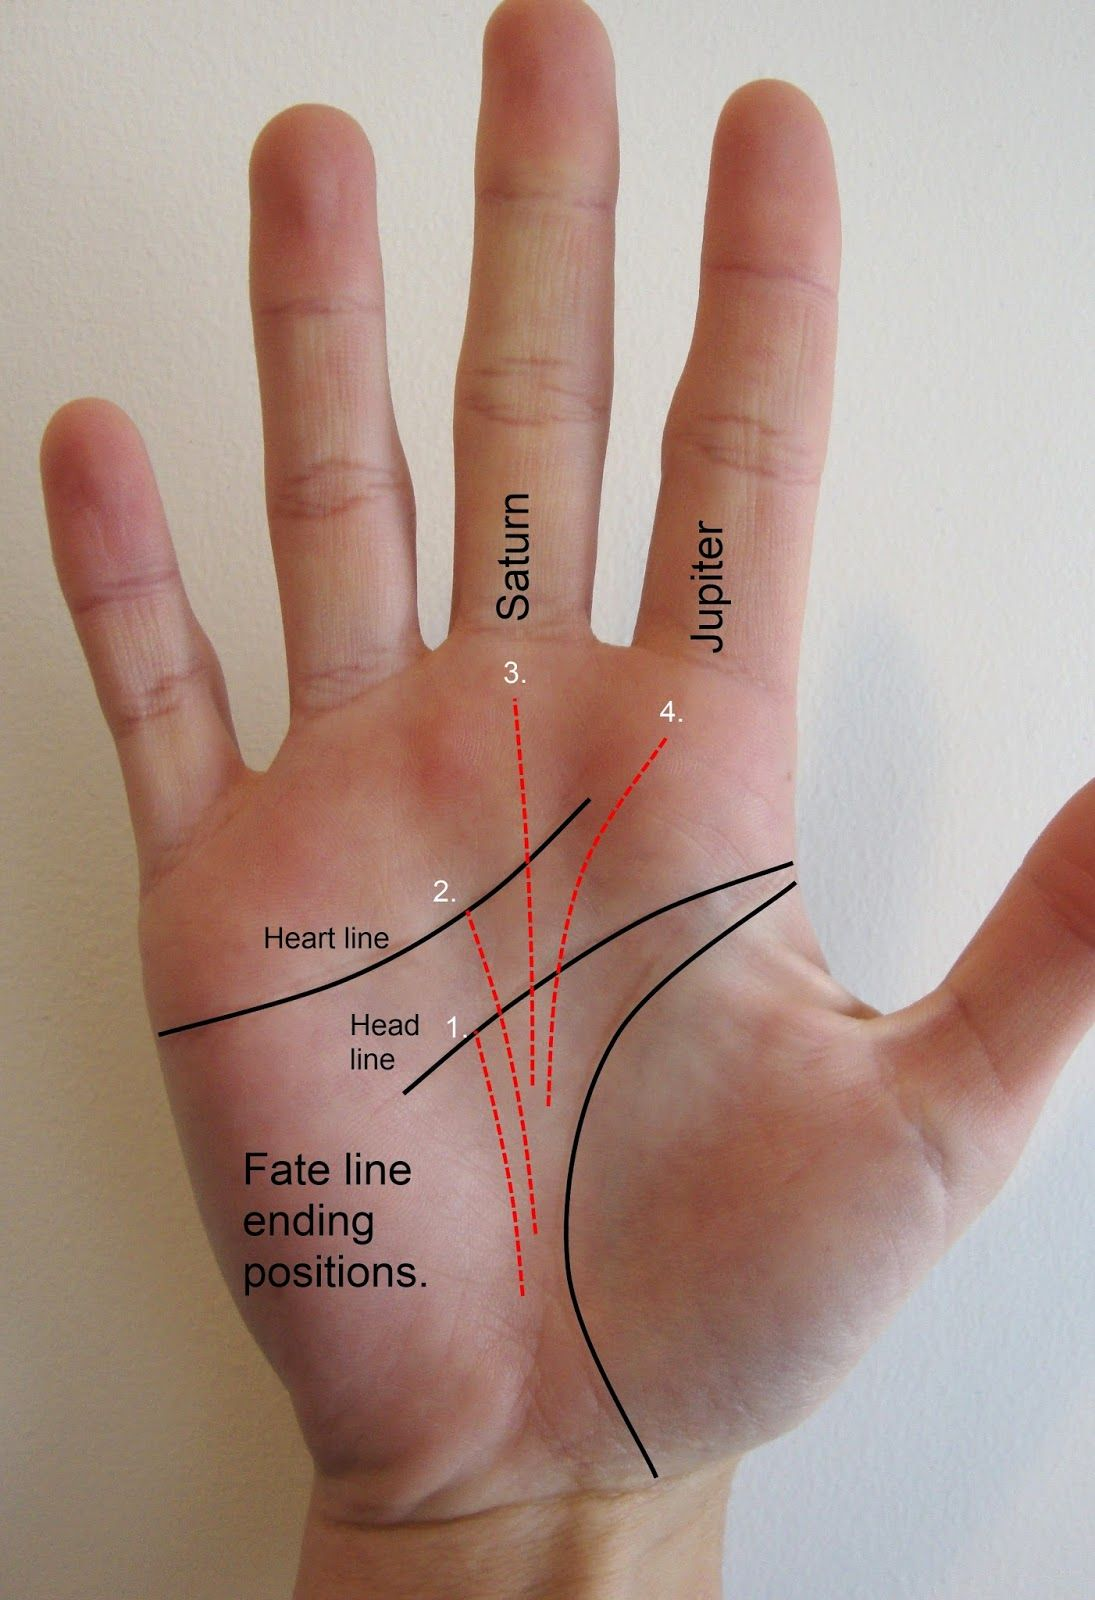 4 Ways to Read Palm Lines - wikiHow